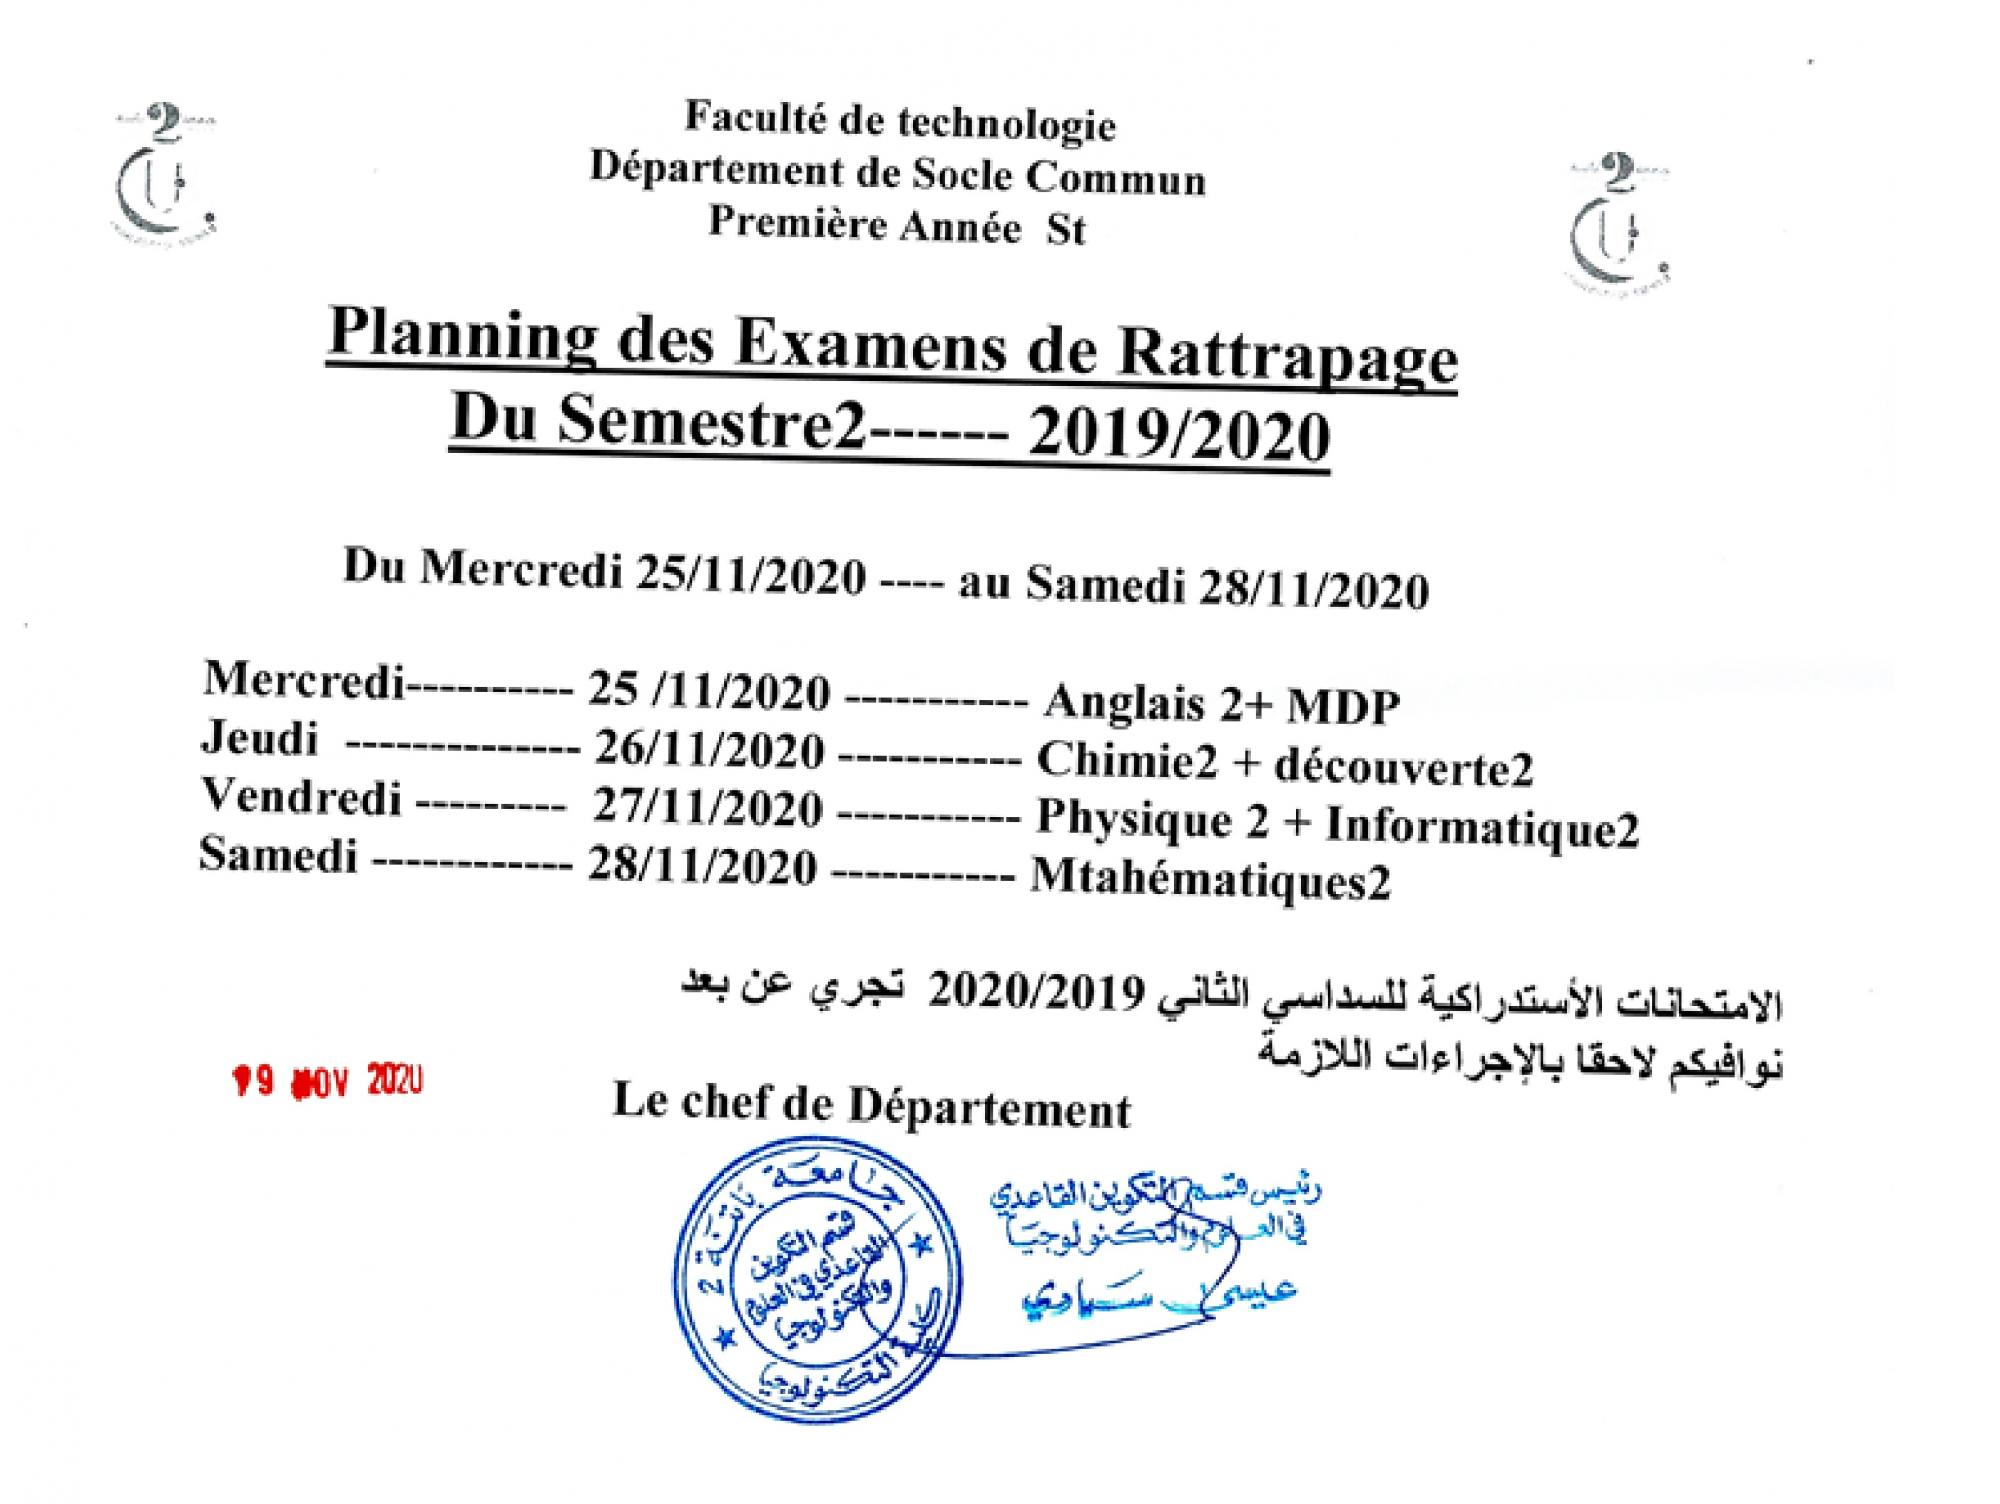 planning_exams_rattrapage_s2_2019-2020_1ere_annee